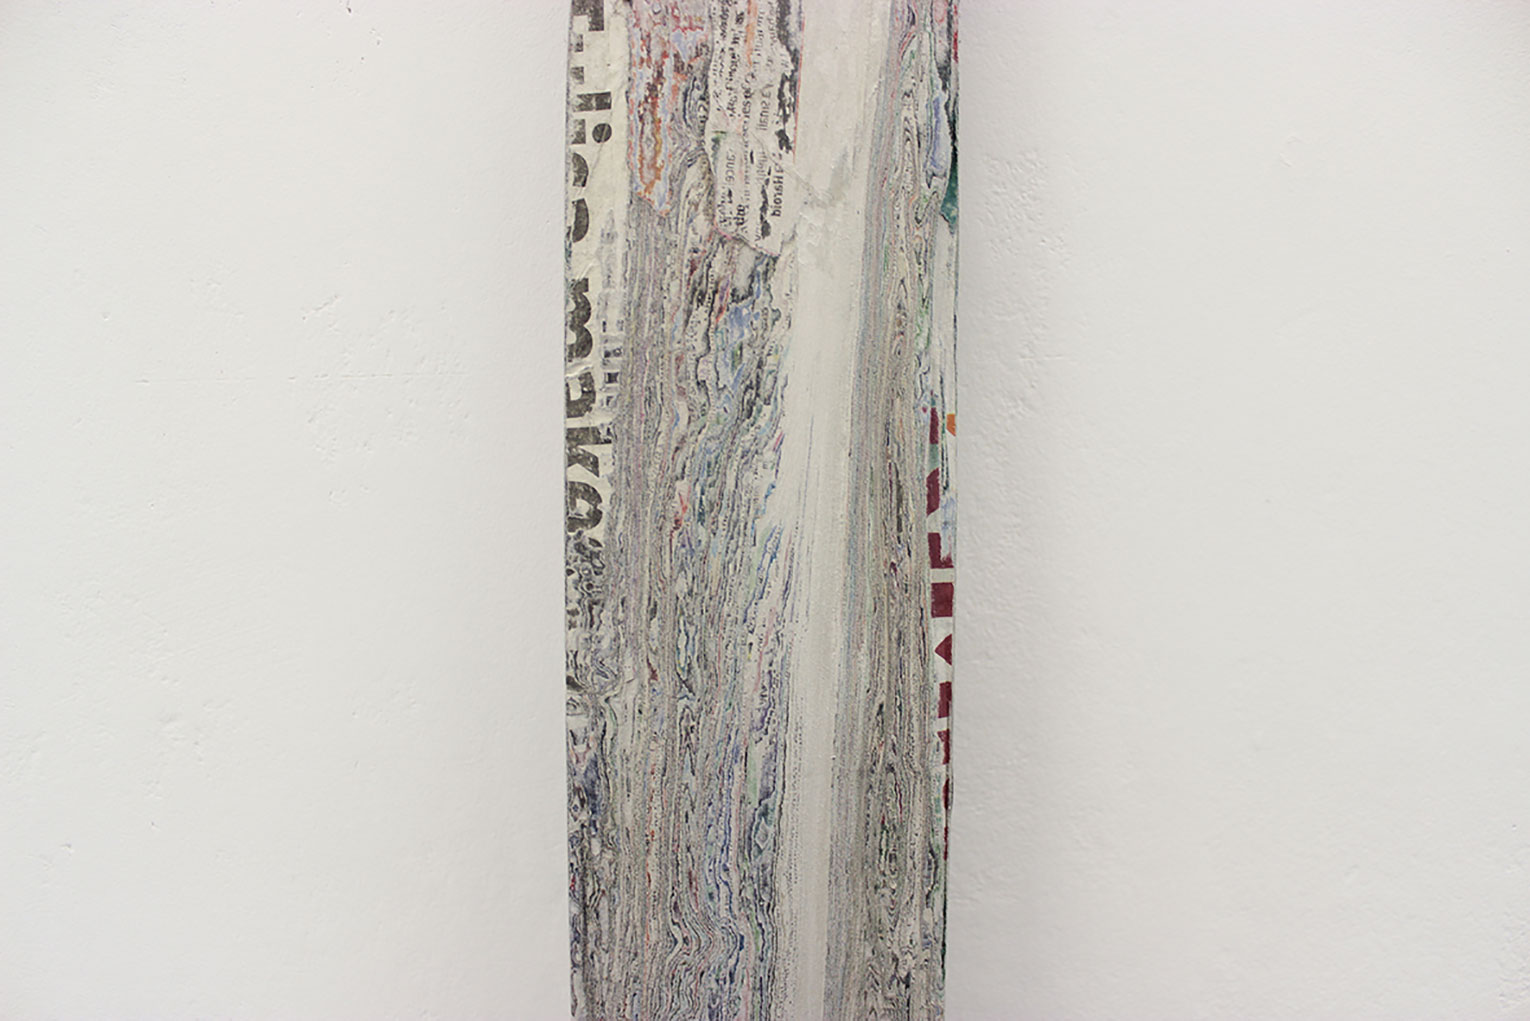 <b>Title:&nbsp;</b>Plank (detail)<br /><b>Year:&nbsp;</b>2013<br /><b>Medium:&nbsp;</b>Newspaper and PVA<br /><b>Size:&nbsp;</b>175 x 9 x 2 cm